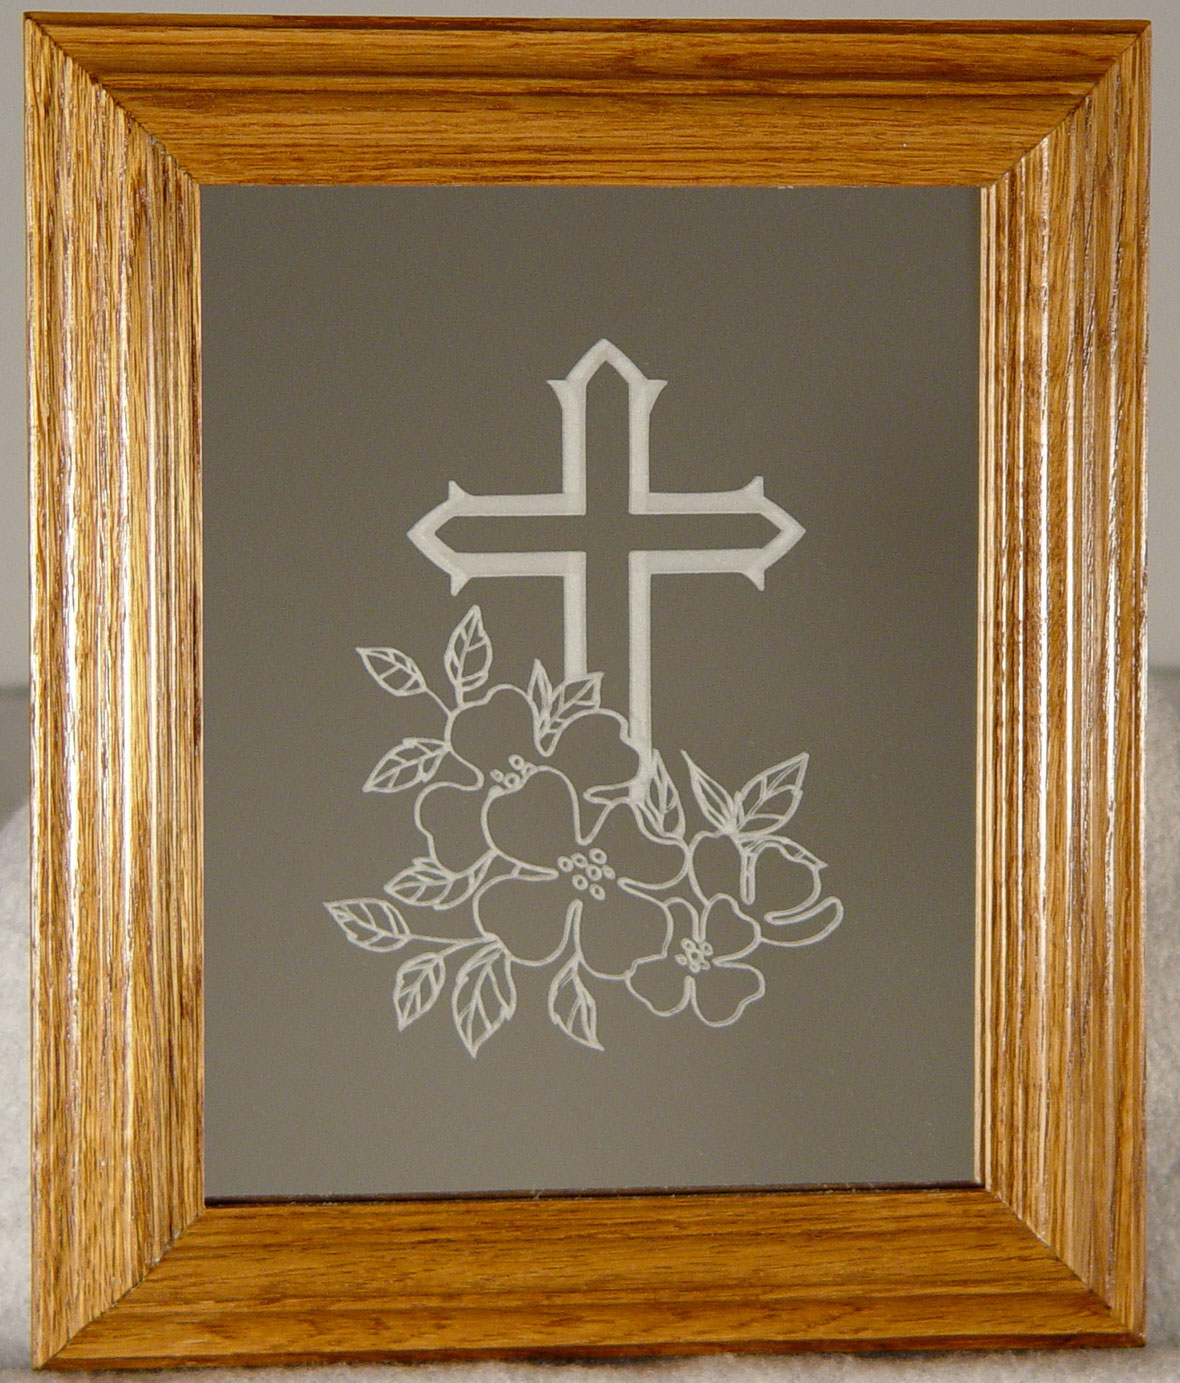 Etched with a cross